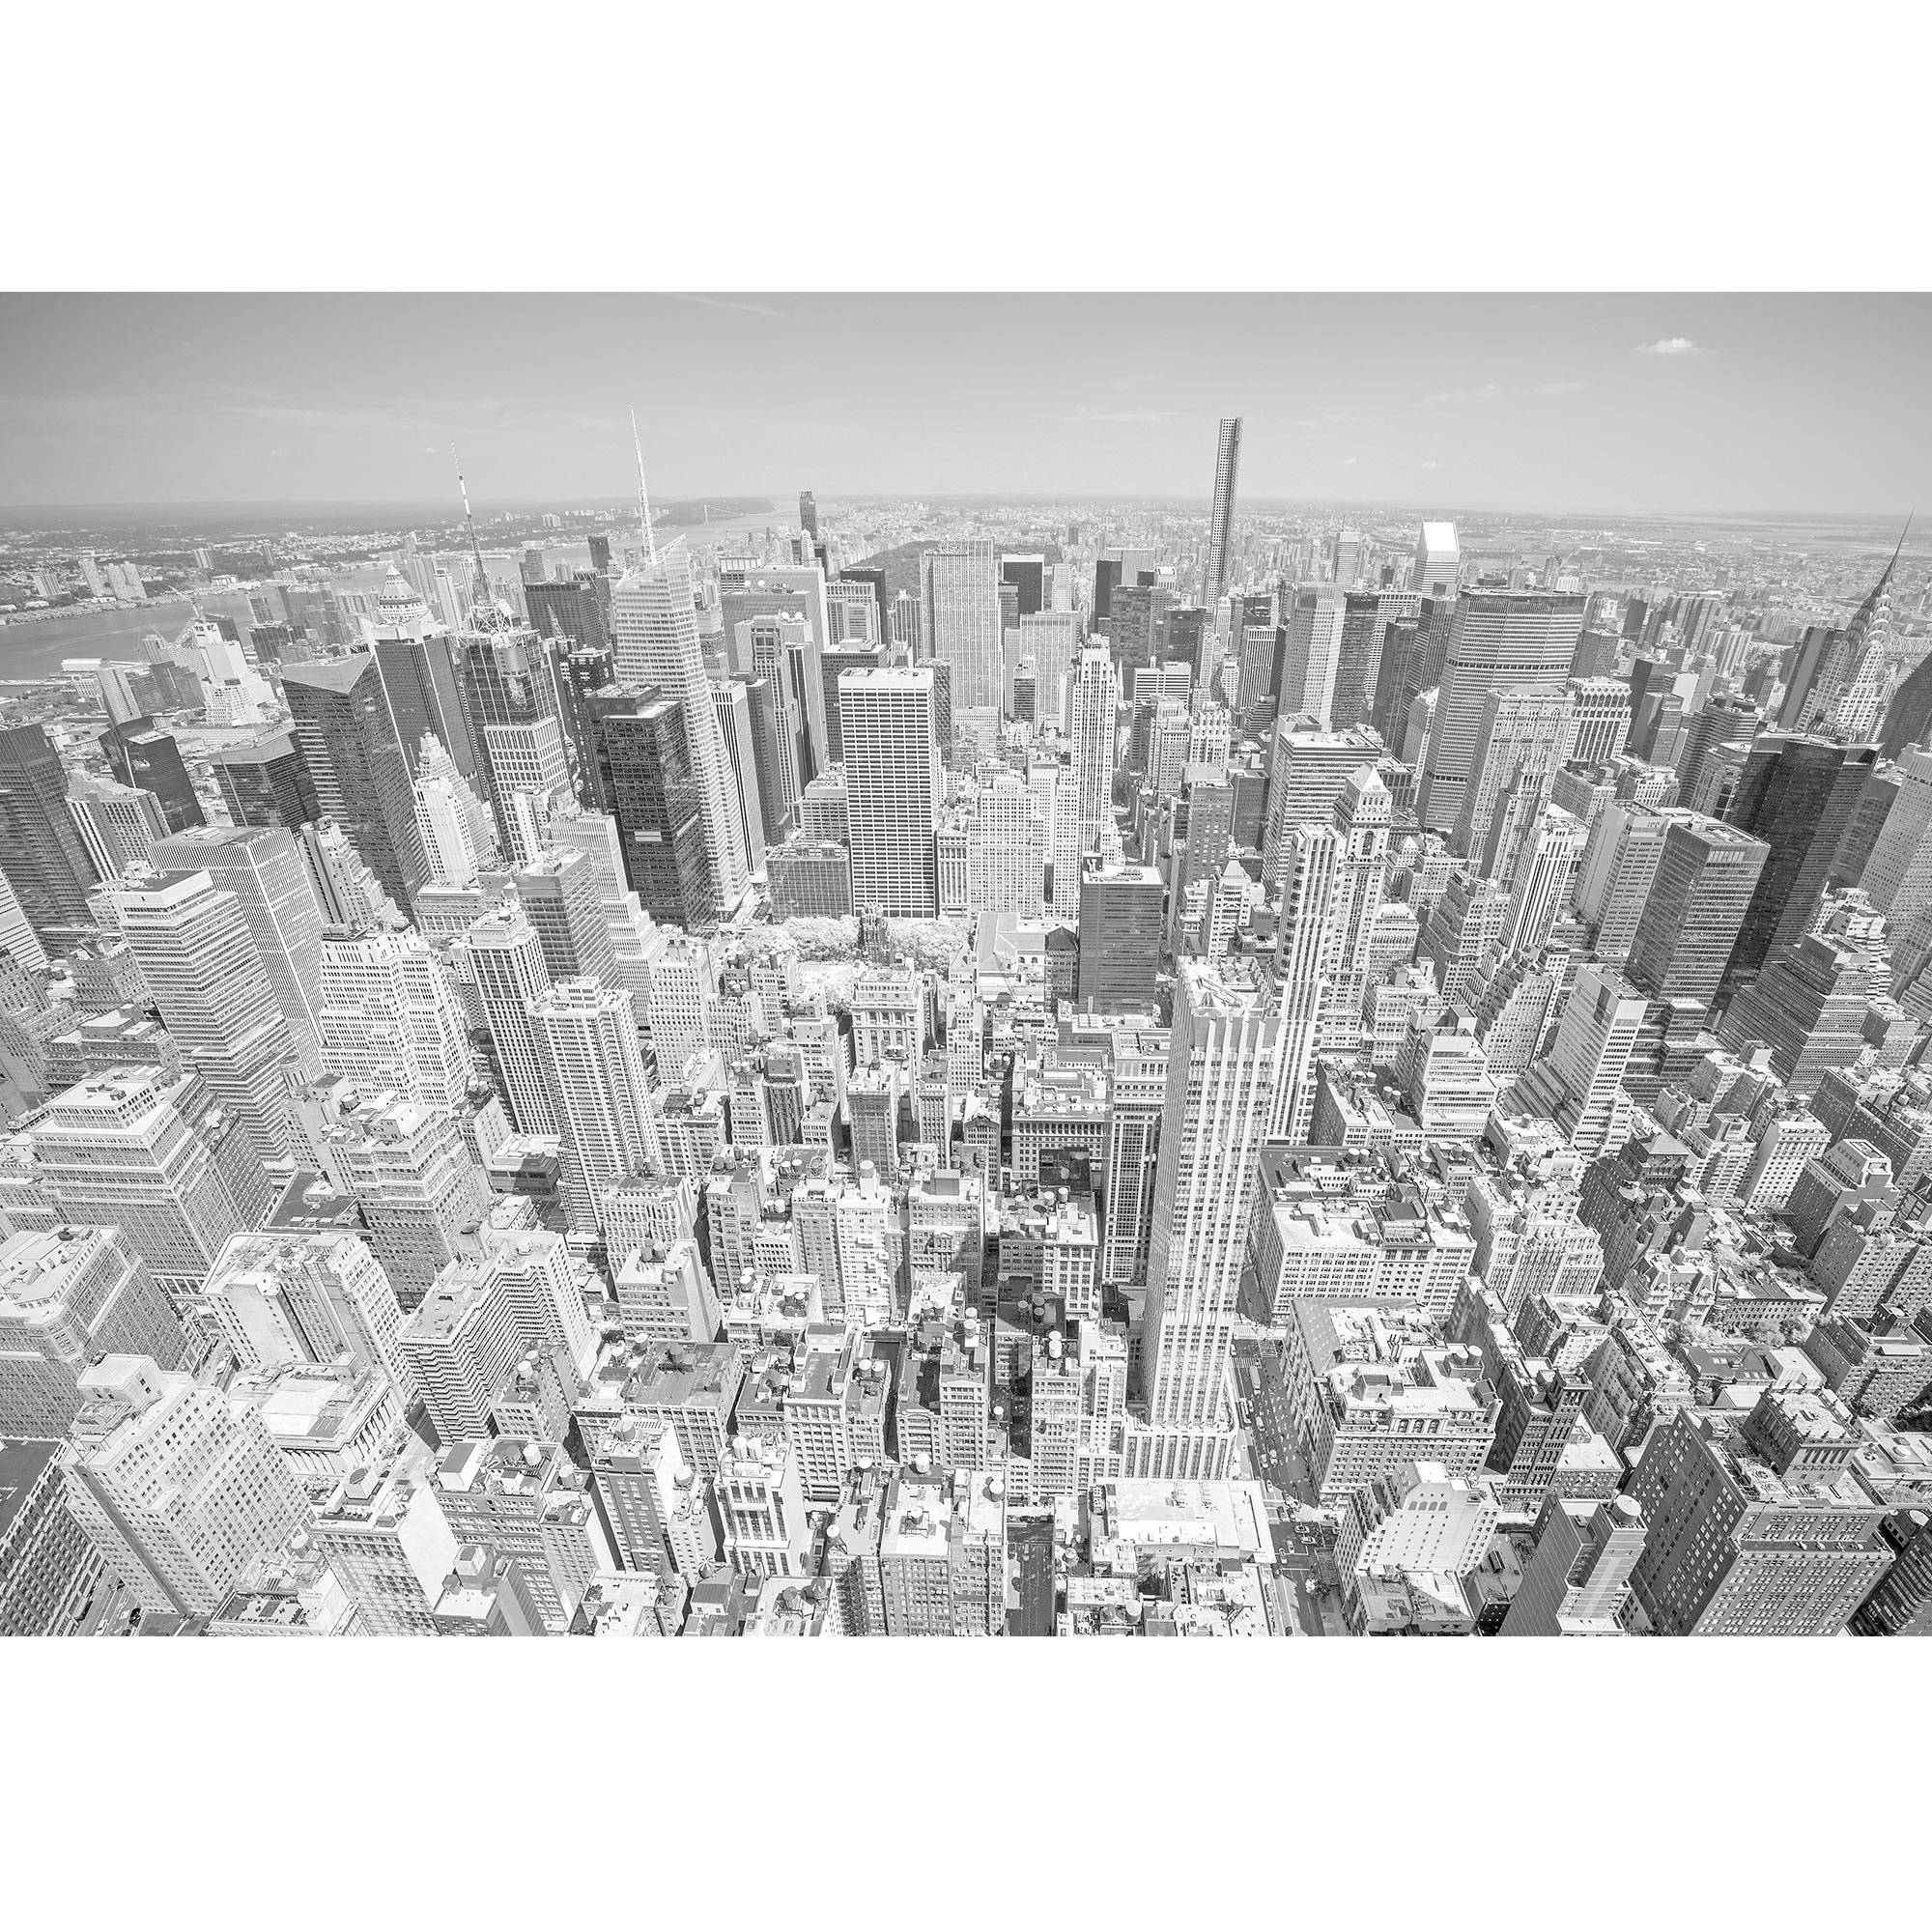 wall26 - Black and White Toned Aerial View of Manhattan, New York City, Usa. - Removable Wall Mural | Self-adhesive Large Wallpaper - 100x144 inches by wall26 (Image #2)